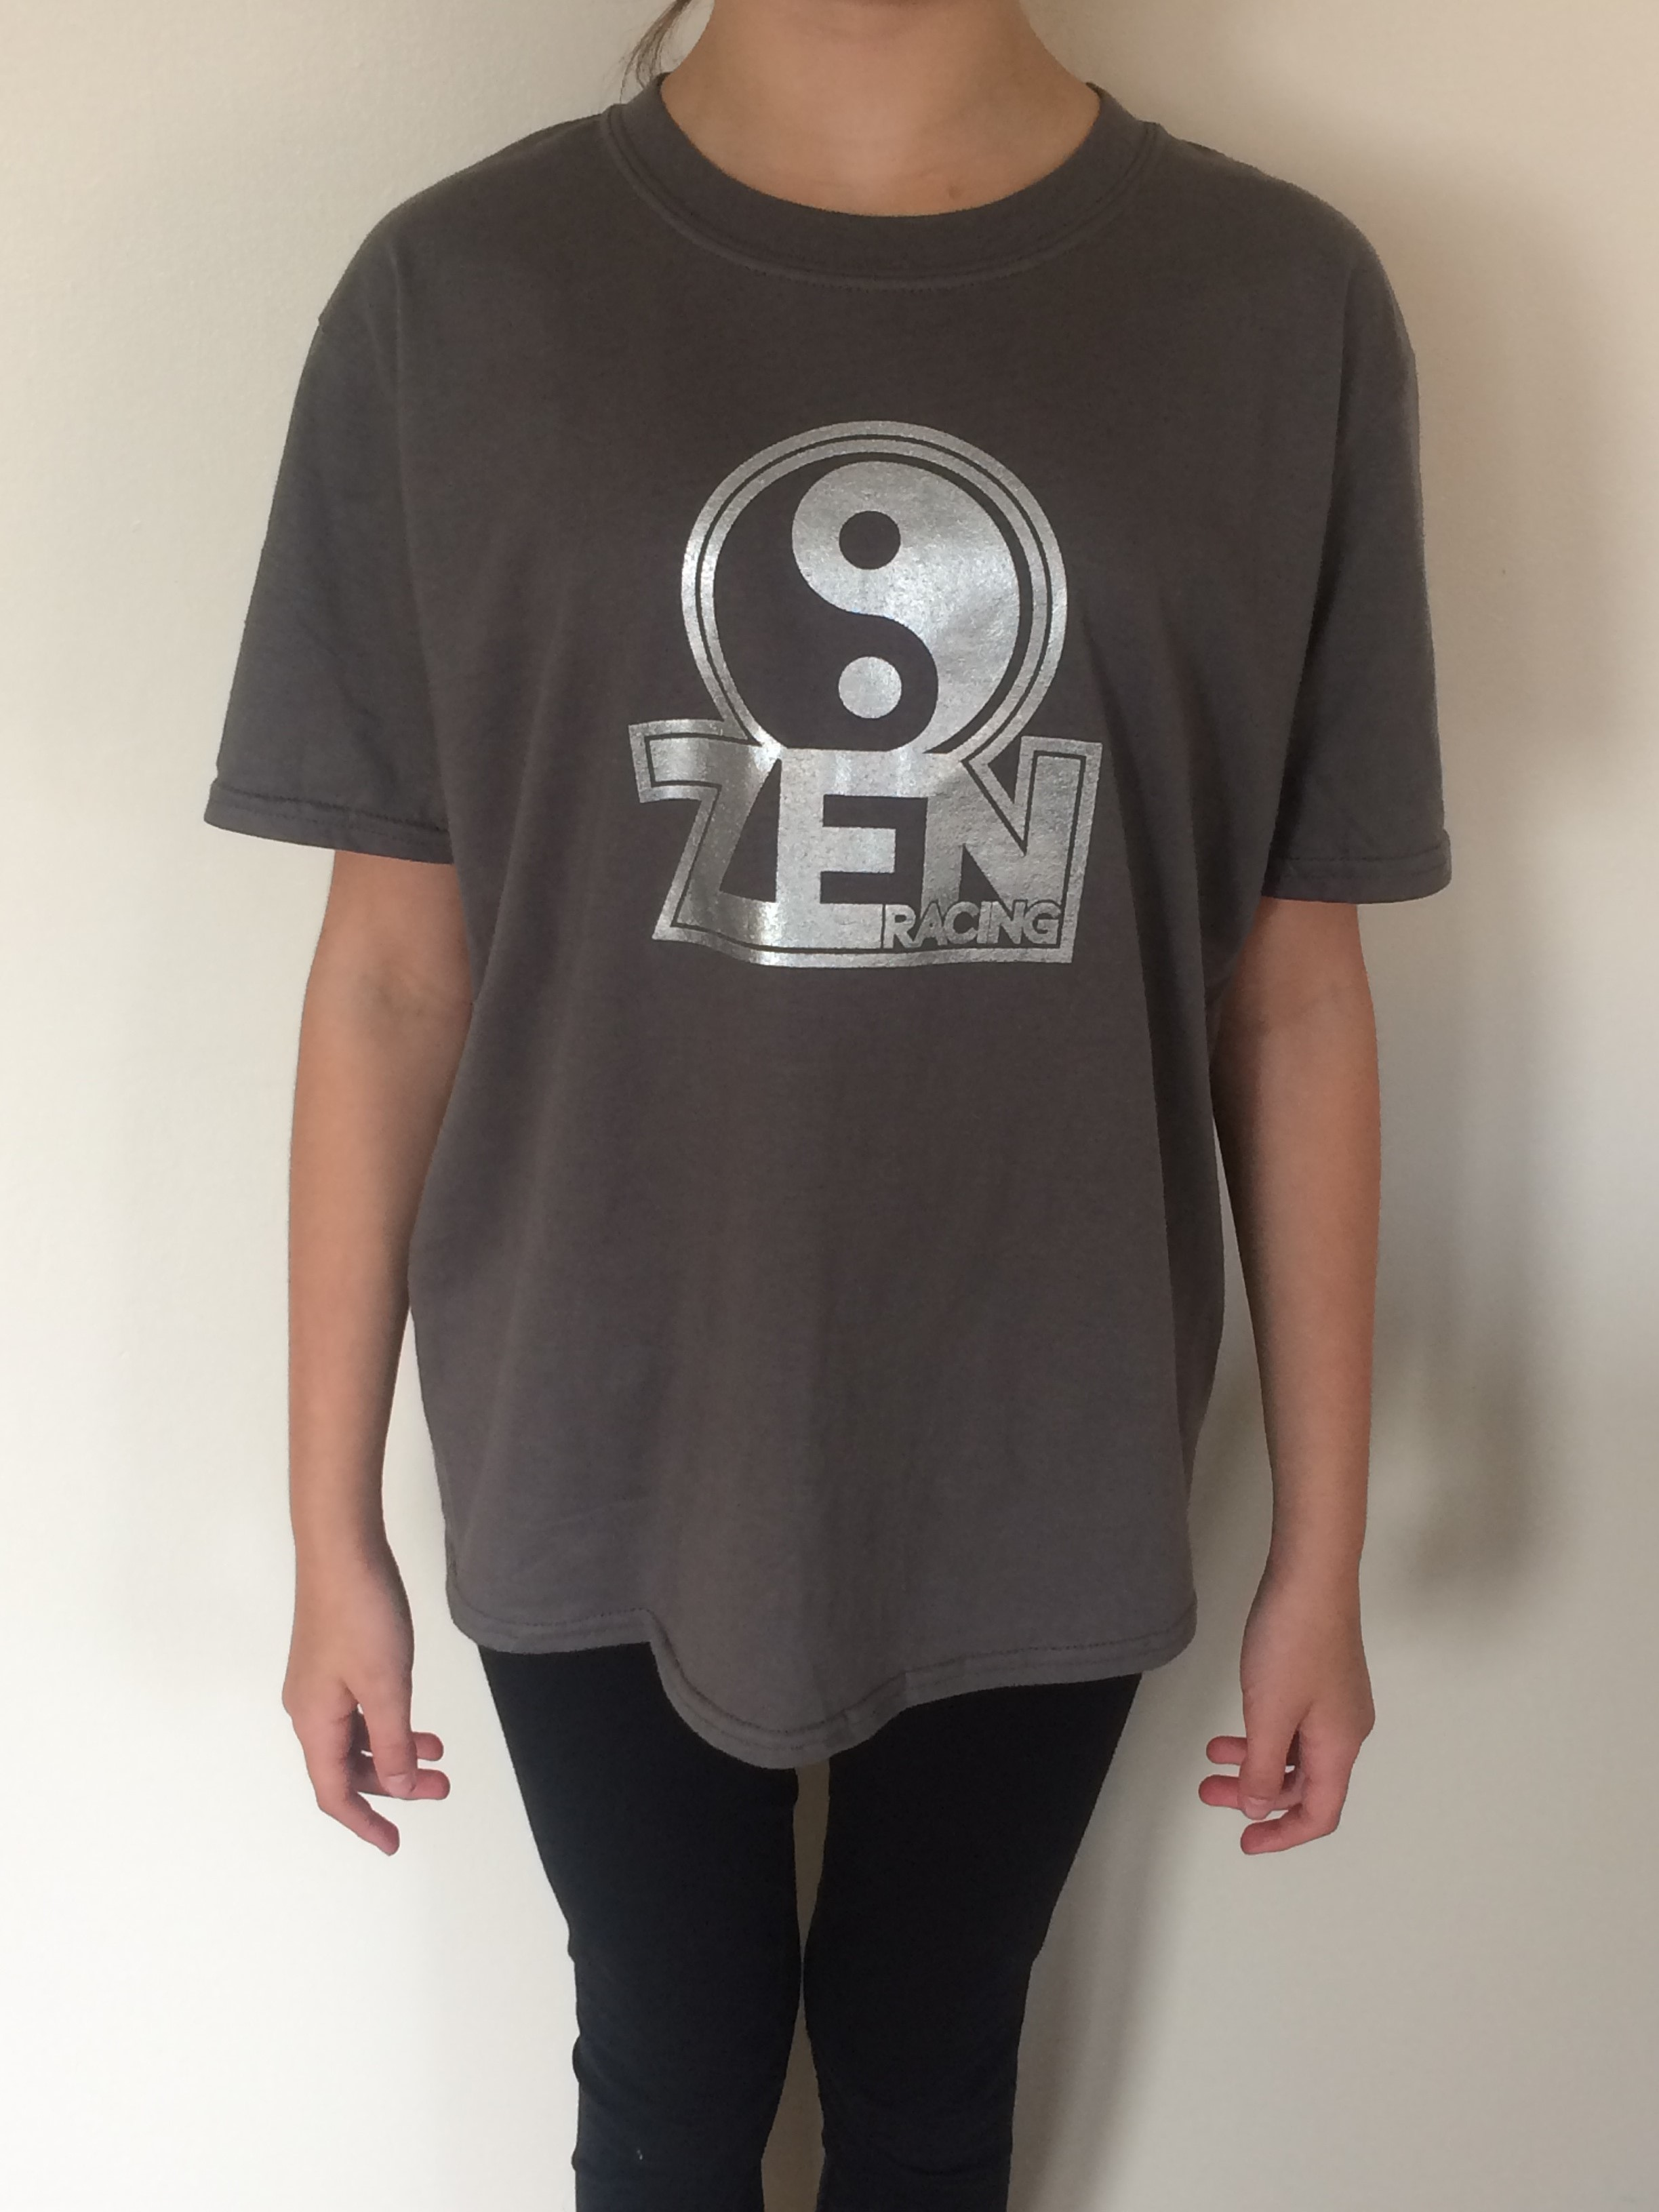 Zen-Racing T-Shirt XXLarge